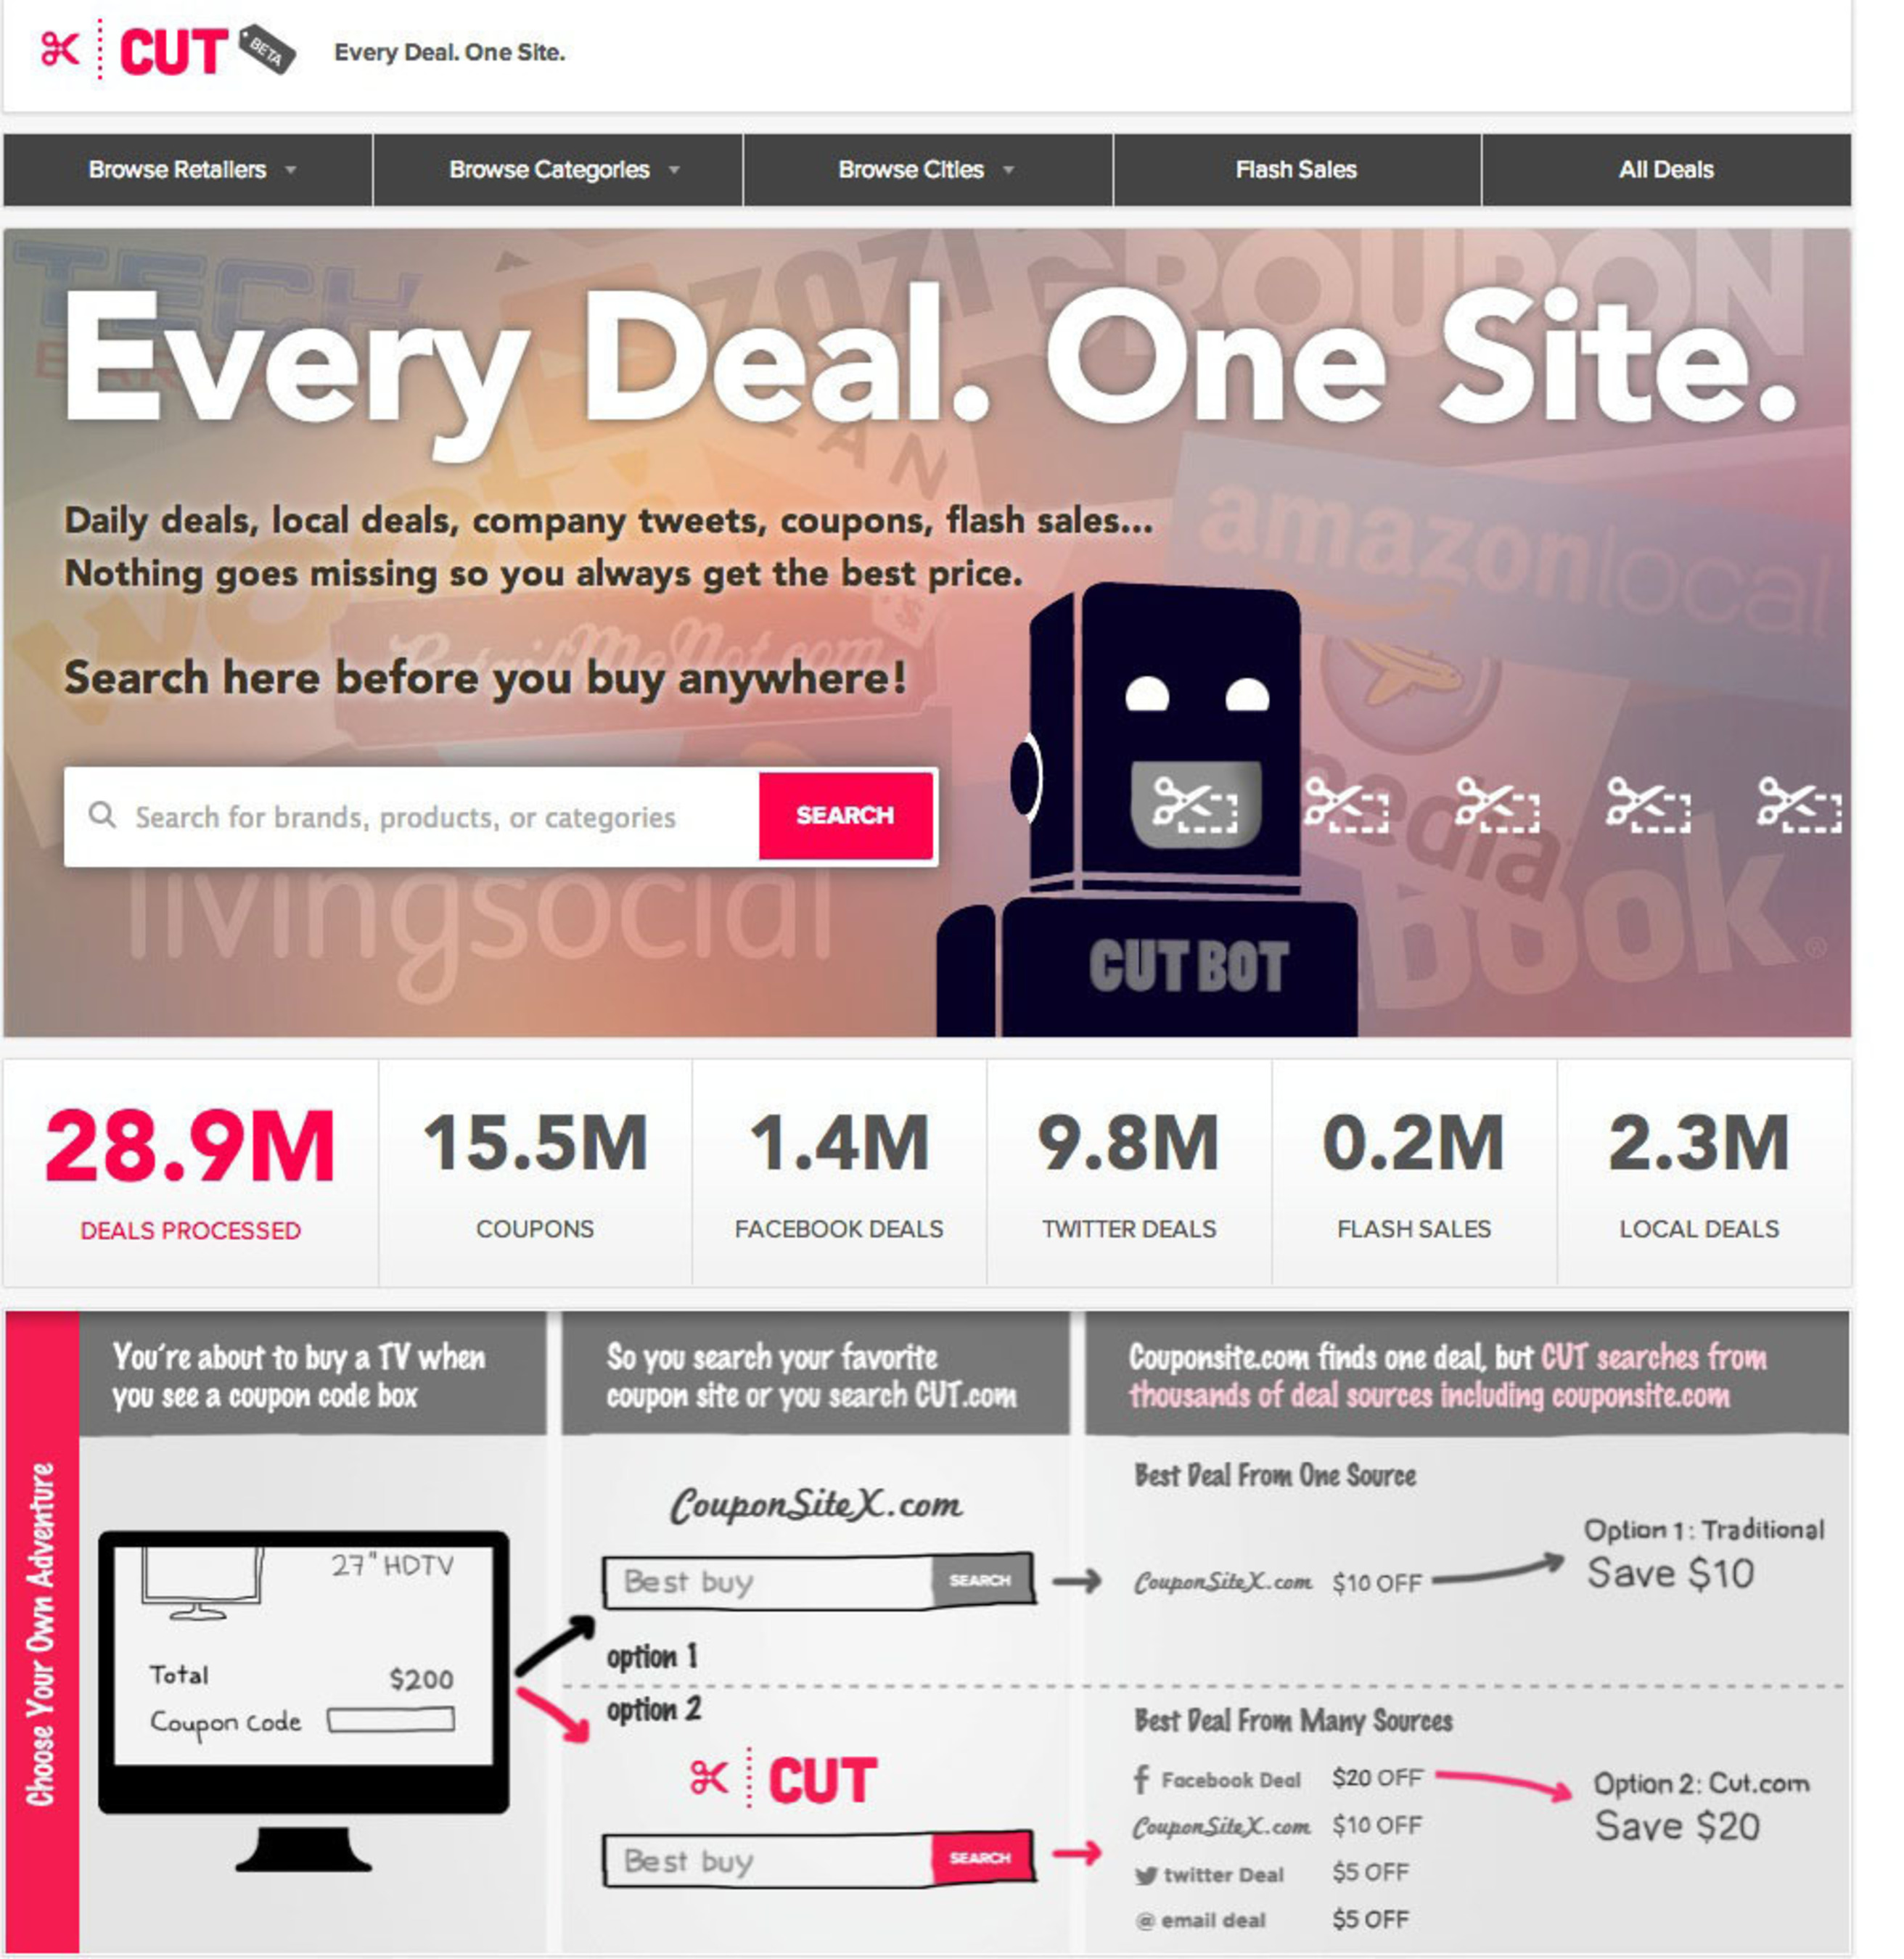 Cut.com Launches - Every Deal. One Website.